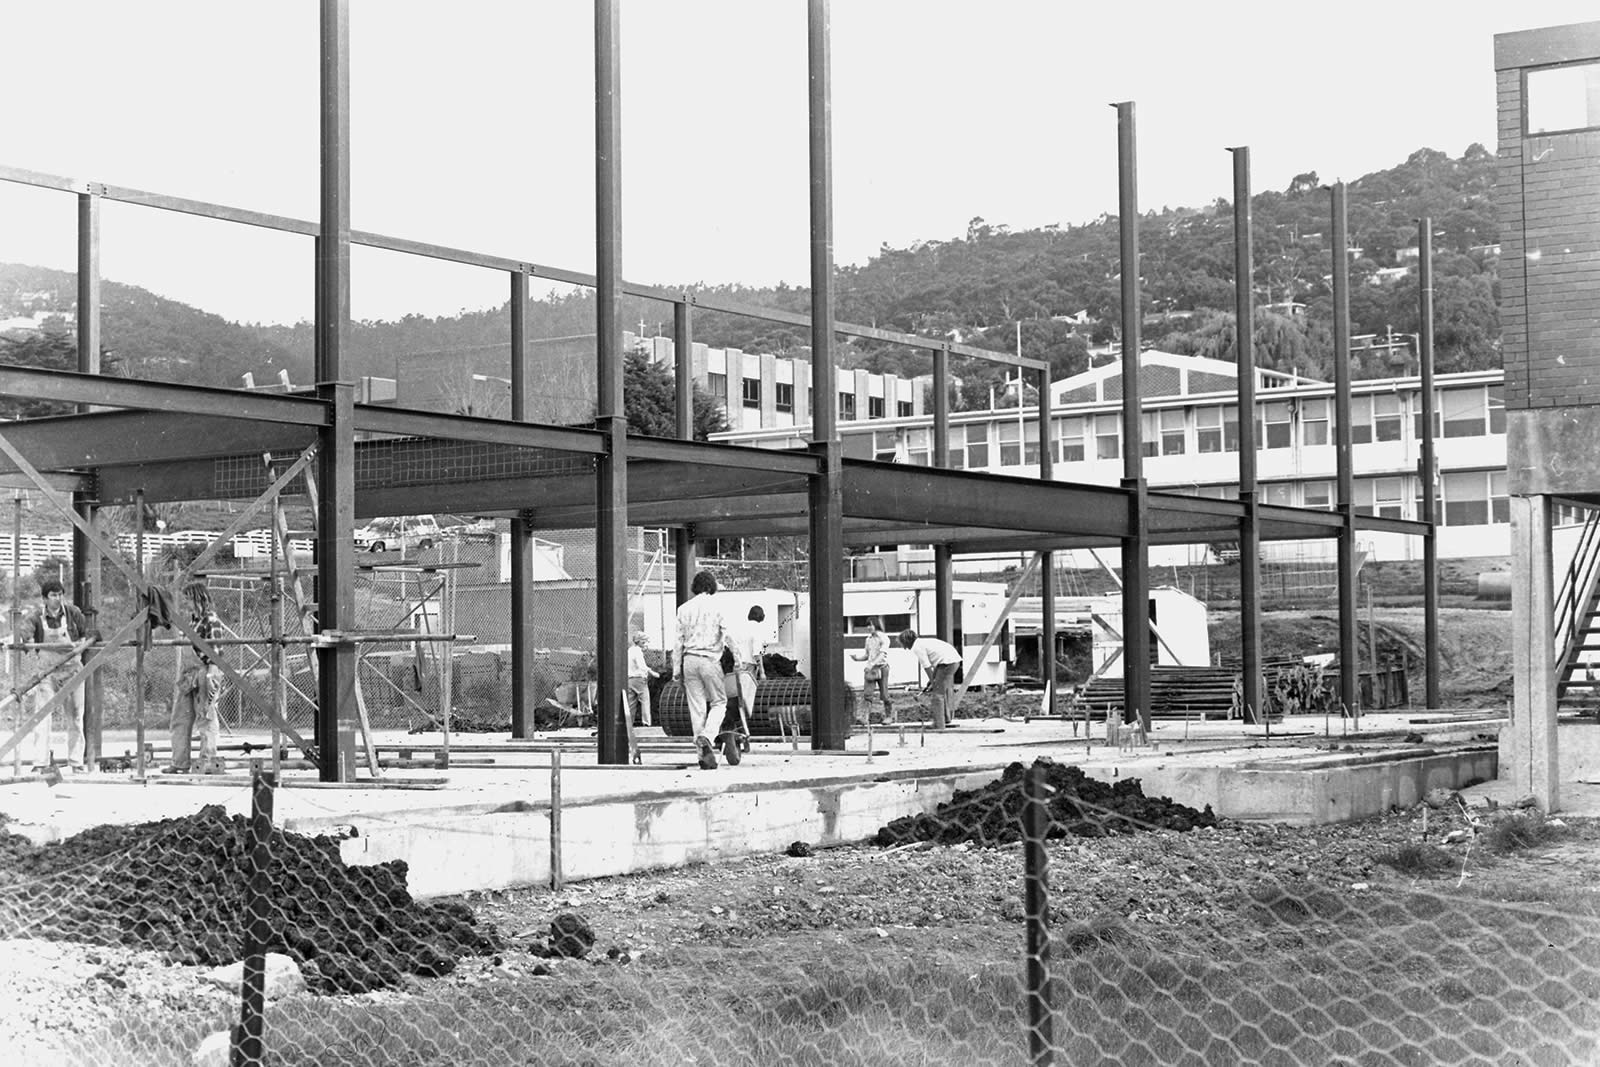 1979 construction of the new Middle School